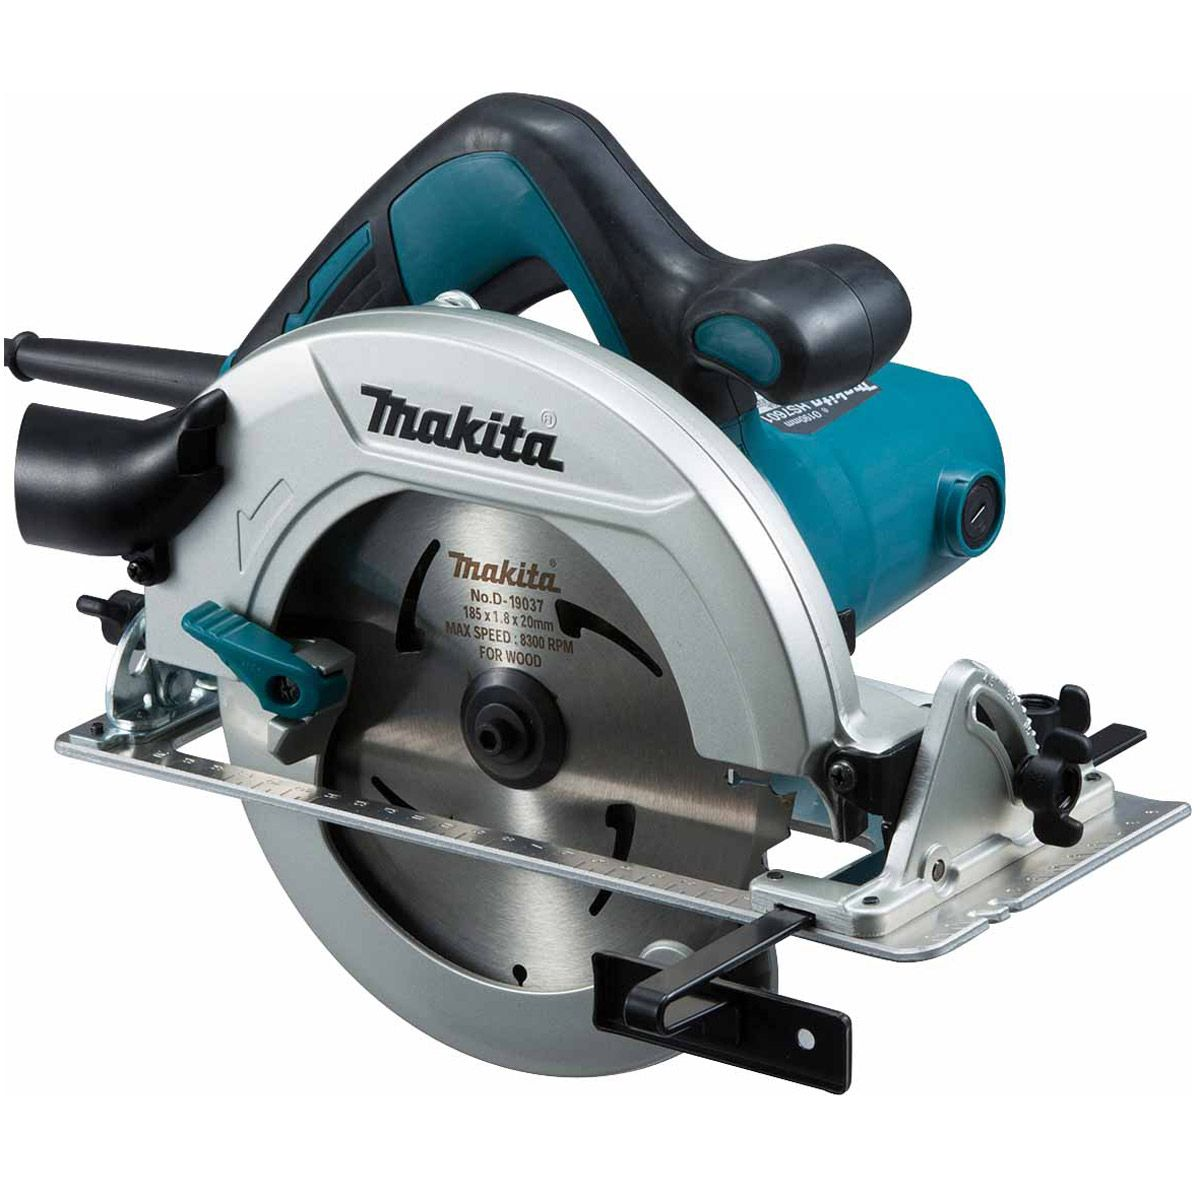 Makita 190mm 1600w Circular Saw 110v MAKHS7611JL   Rear angular guide for smooth and precise adjustment of bevel angle   toolforce.ie